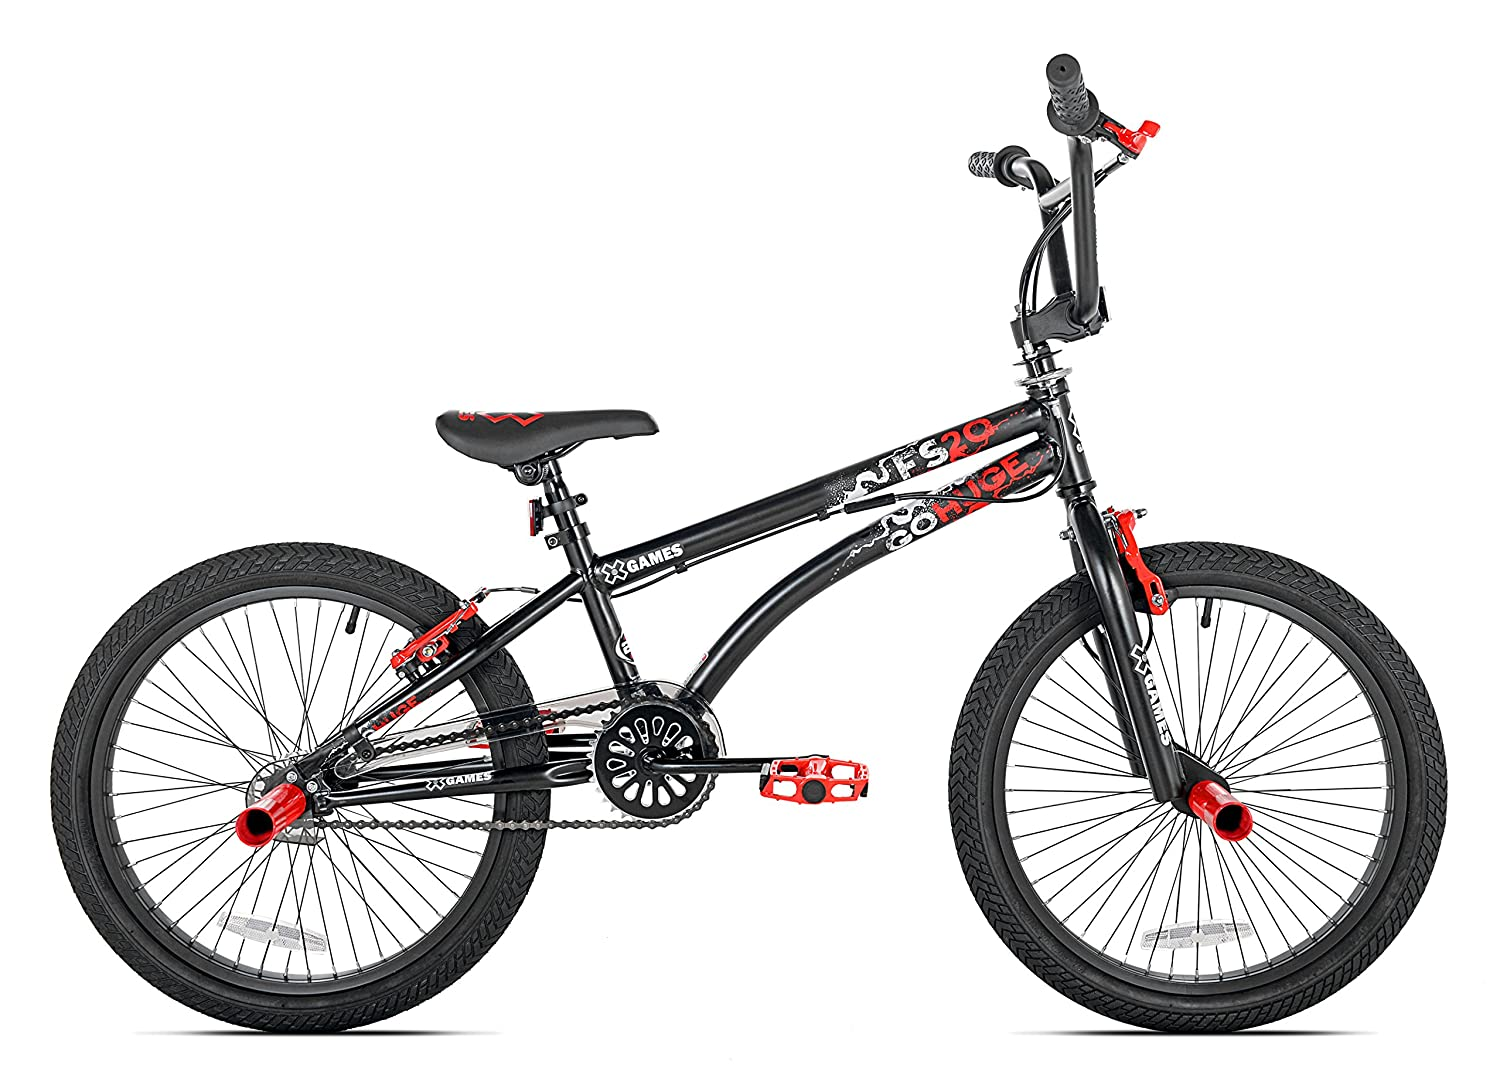 amazoncom x games fs 20 bmxfreestyle bicycle 20 inch black red childrens bicycles sports outdoors